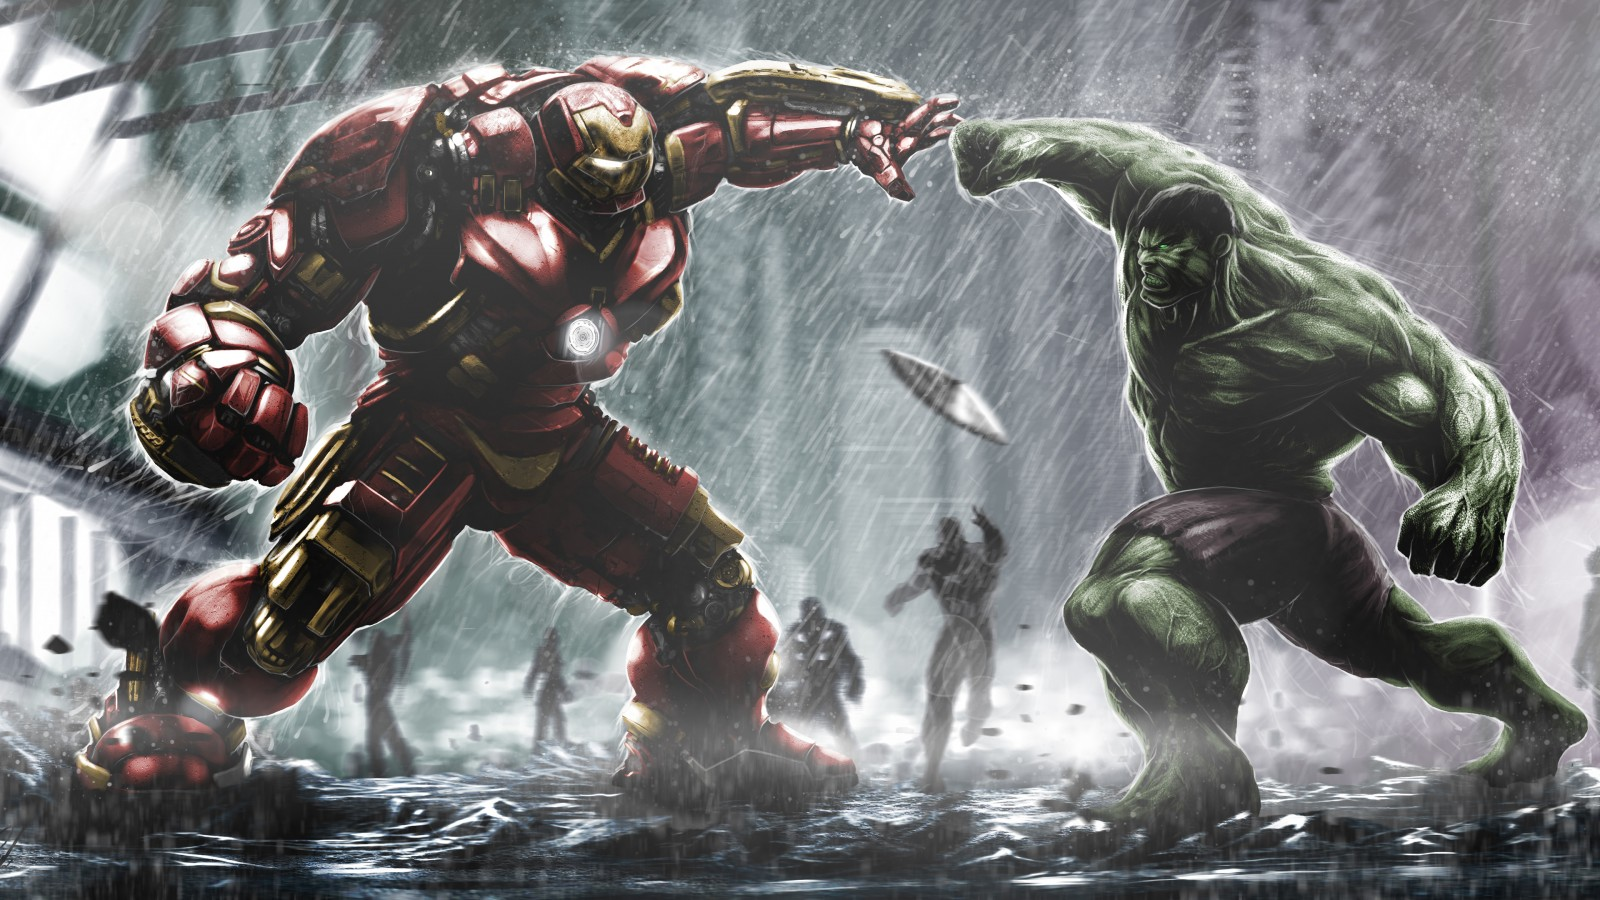 Power Rangers 3d Wallpaper Hulkbuster Ironman Vs Hulk Wallpapers Hd Wallpapers Id